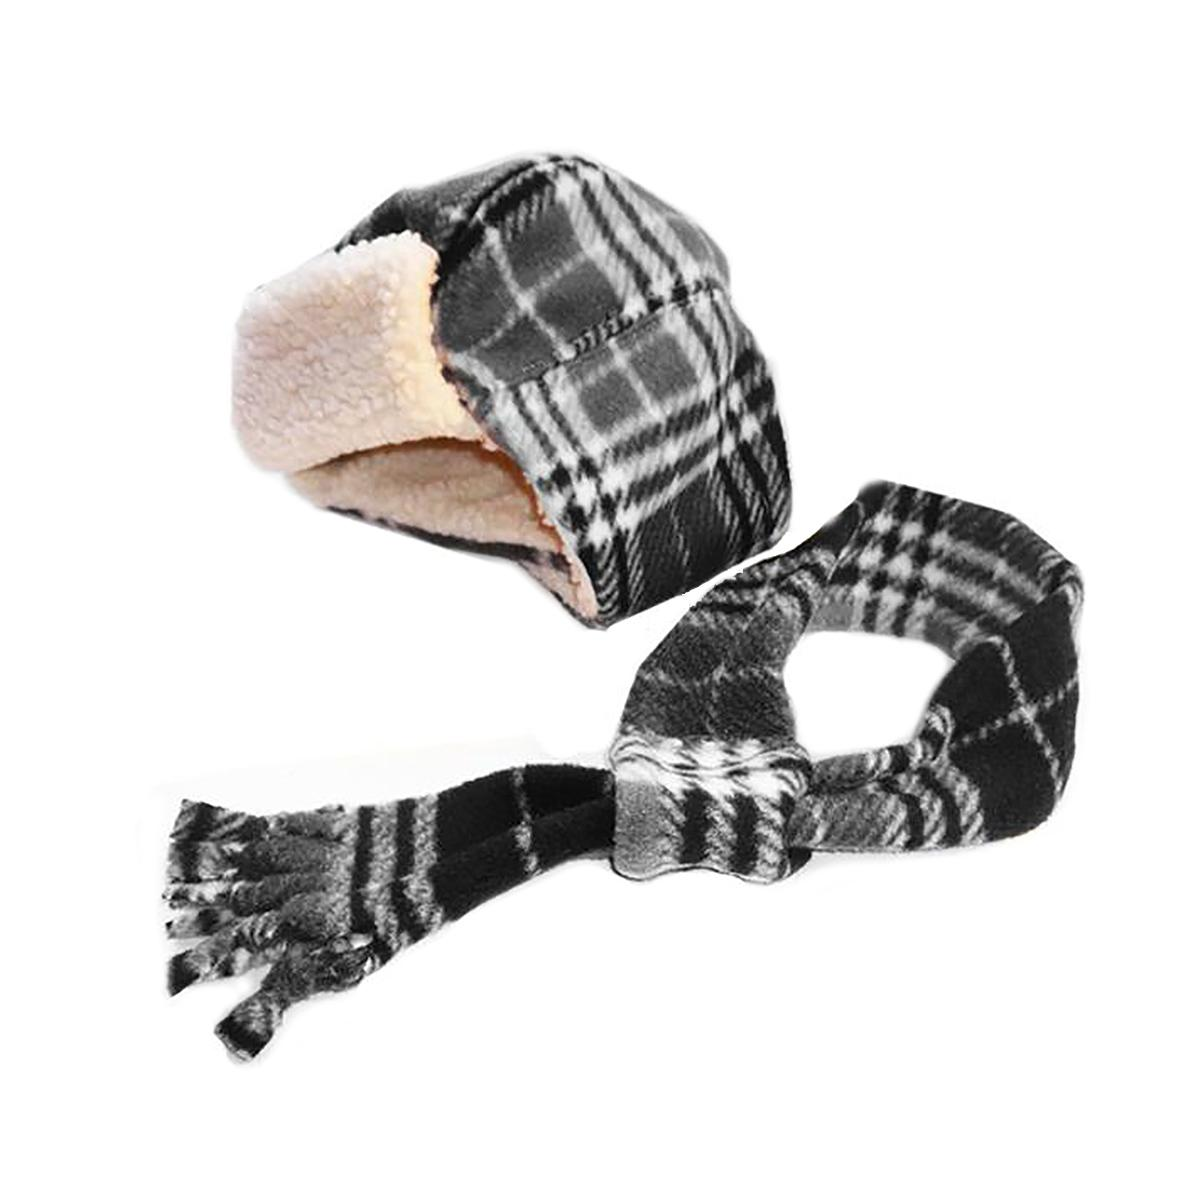 My Canine Kids Aviator Hat and Scarf Set for Dogs - Black Plaid